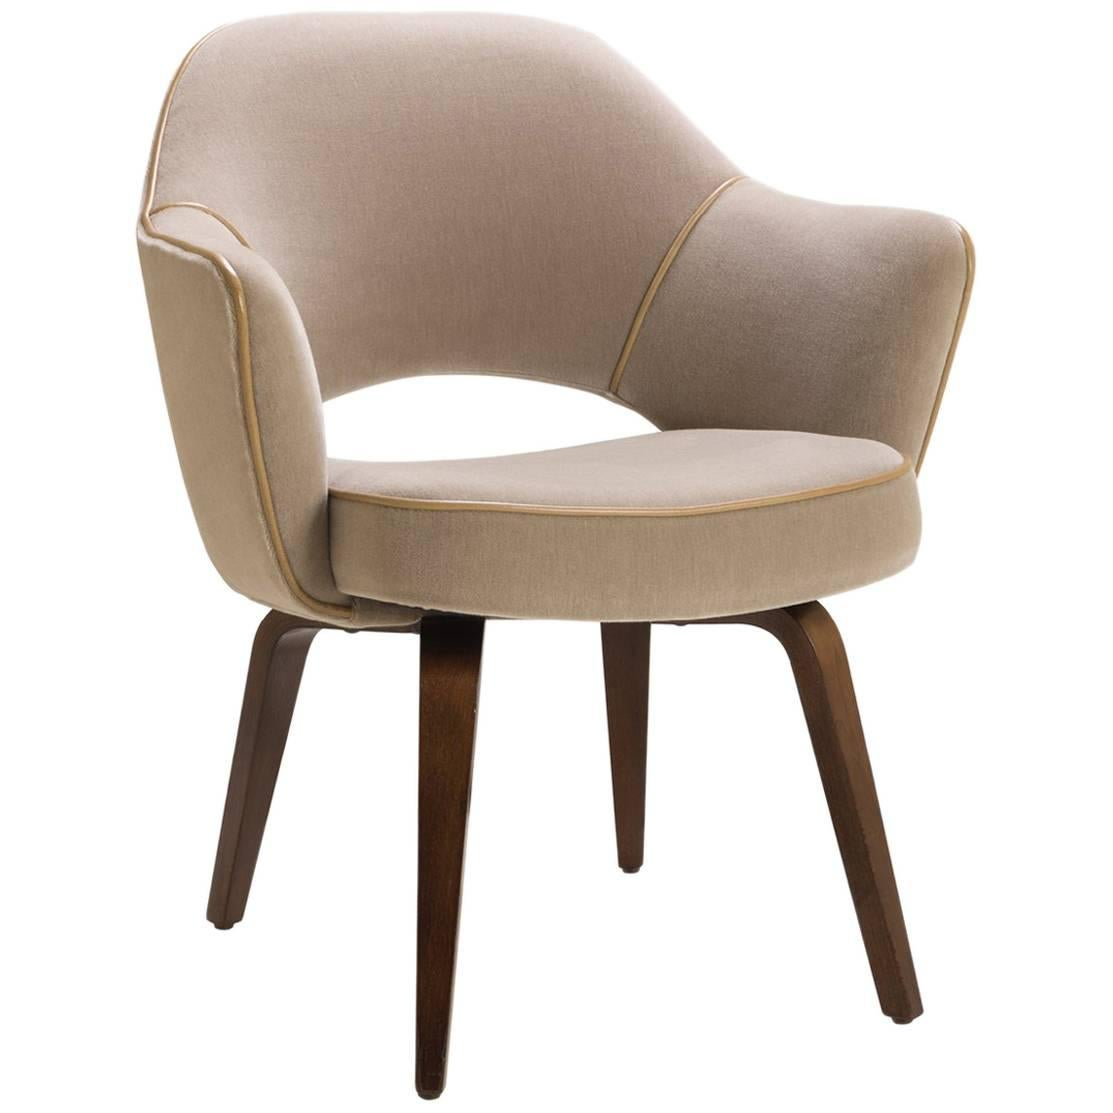 Saarinen Executive Armchair With Walnut Legs In Mohair And Leather Piping  For Sale